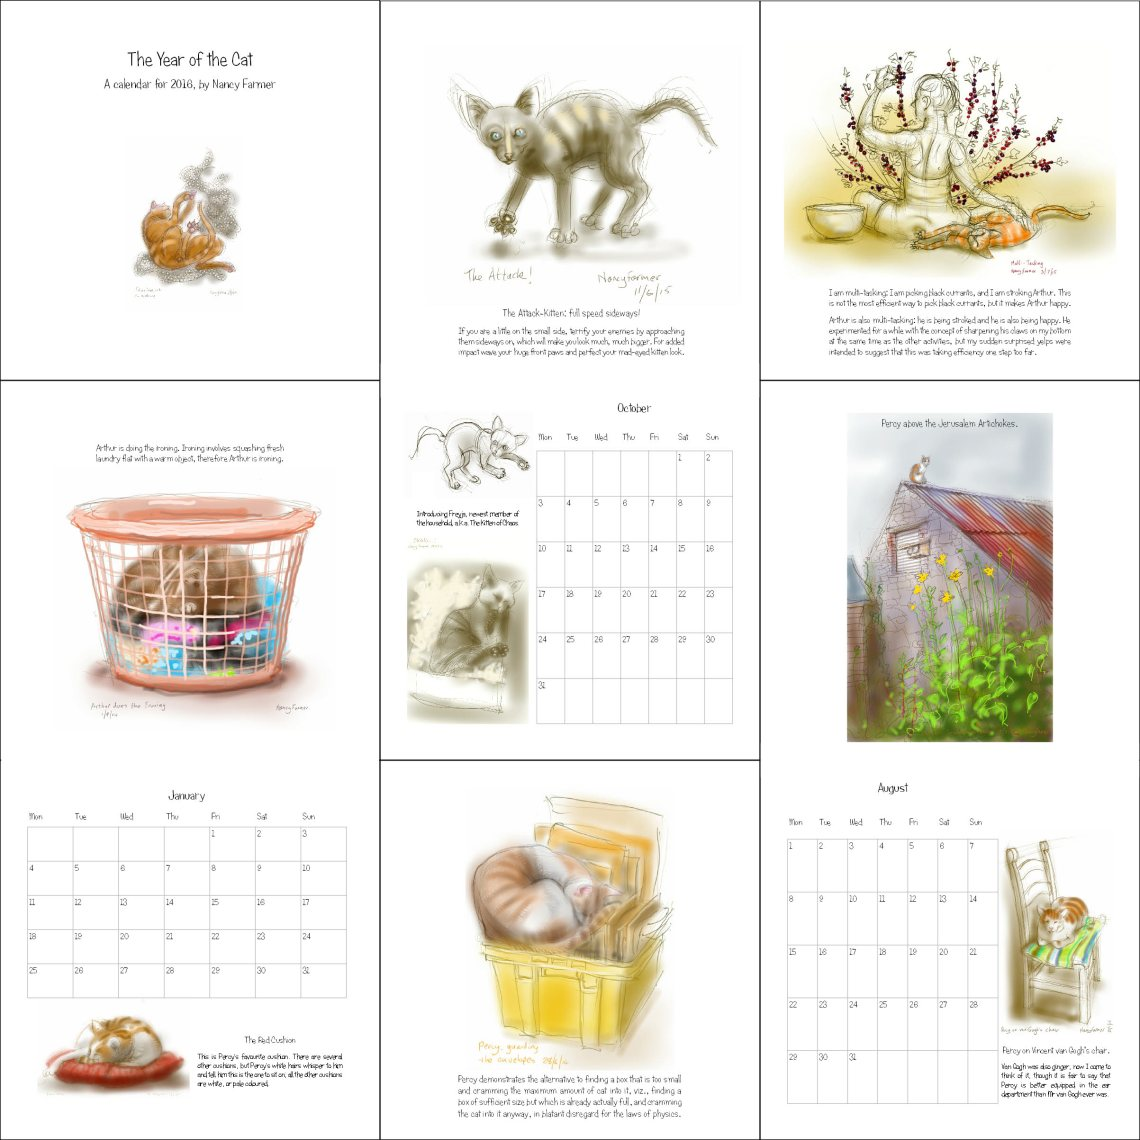 The Year of the Cat - a calendar for 2016 by Nancy Farmer